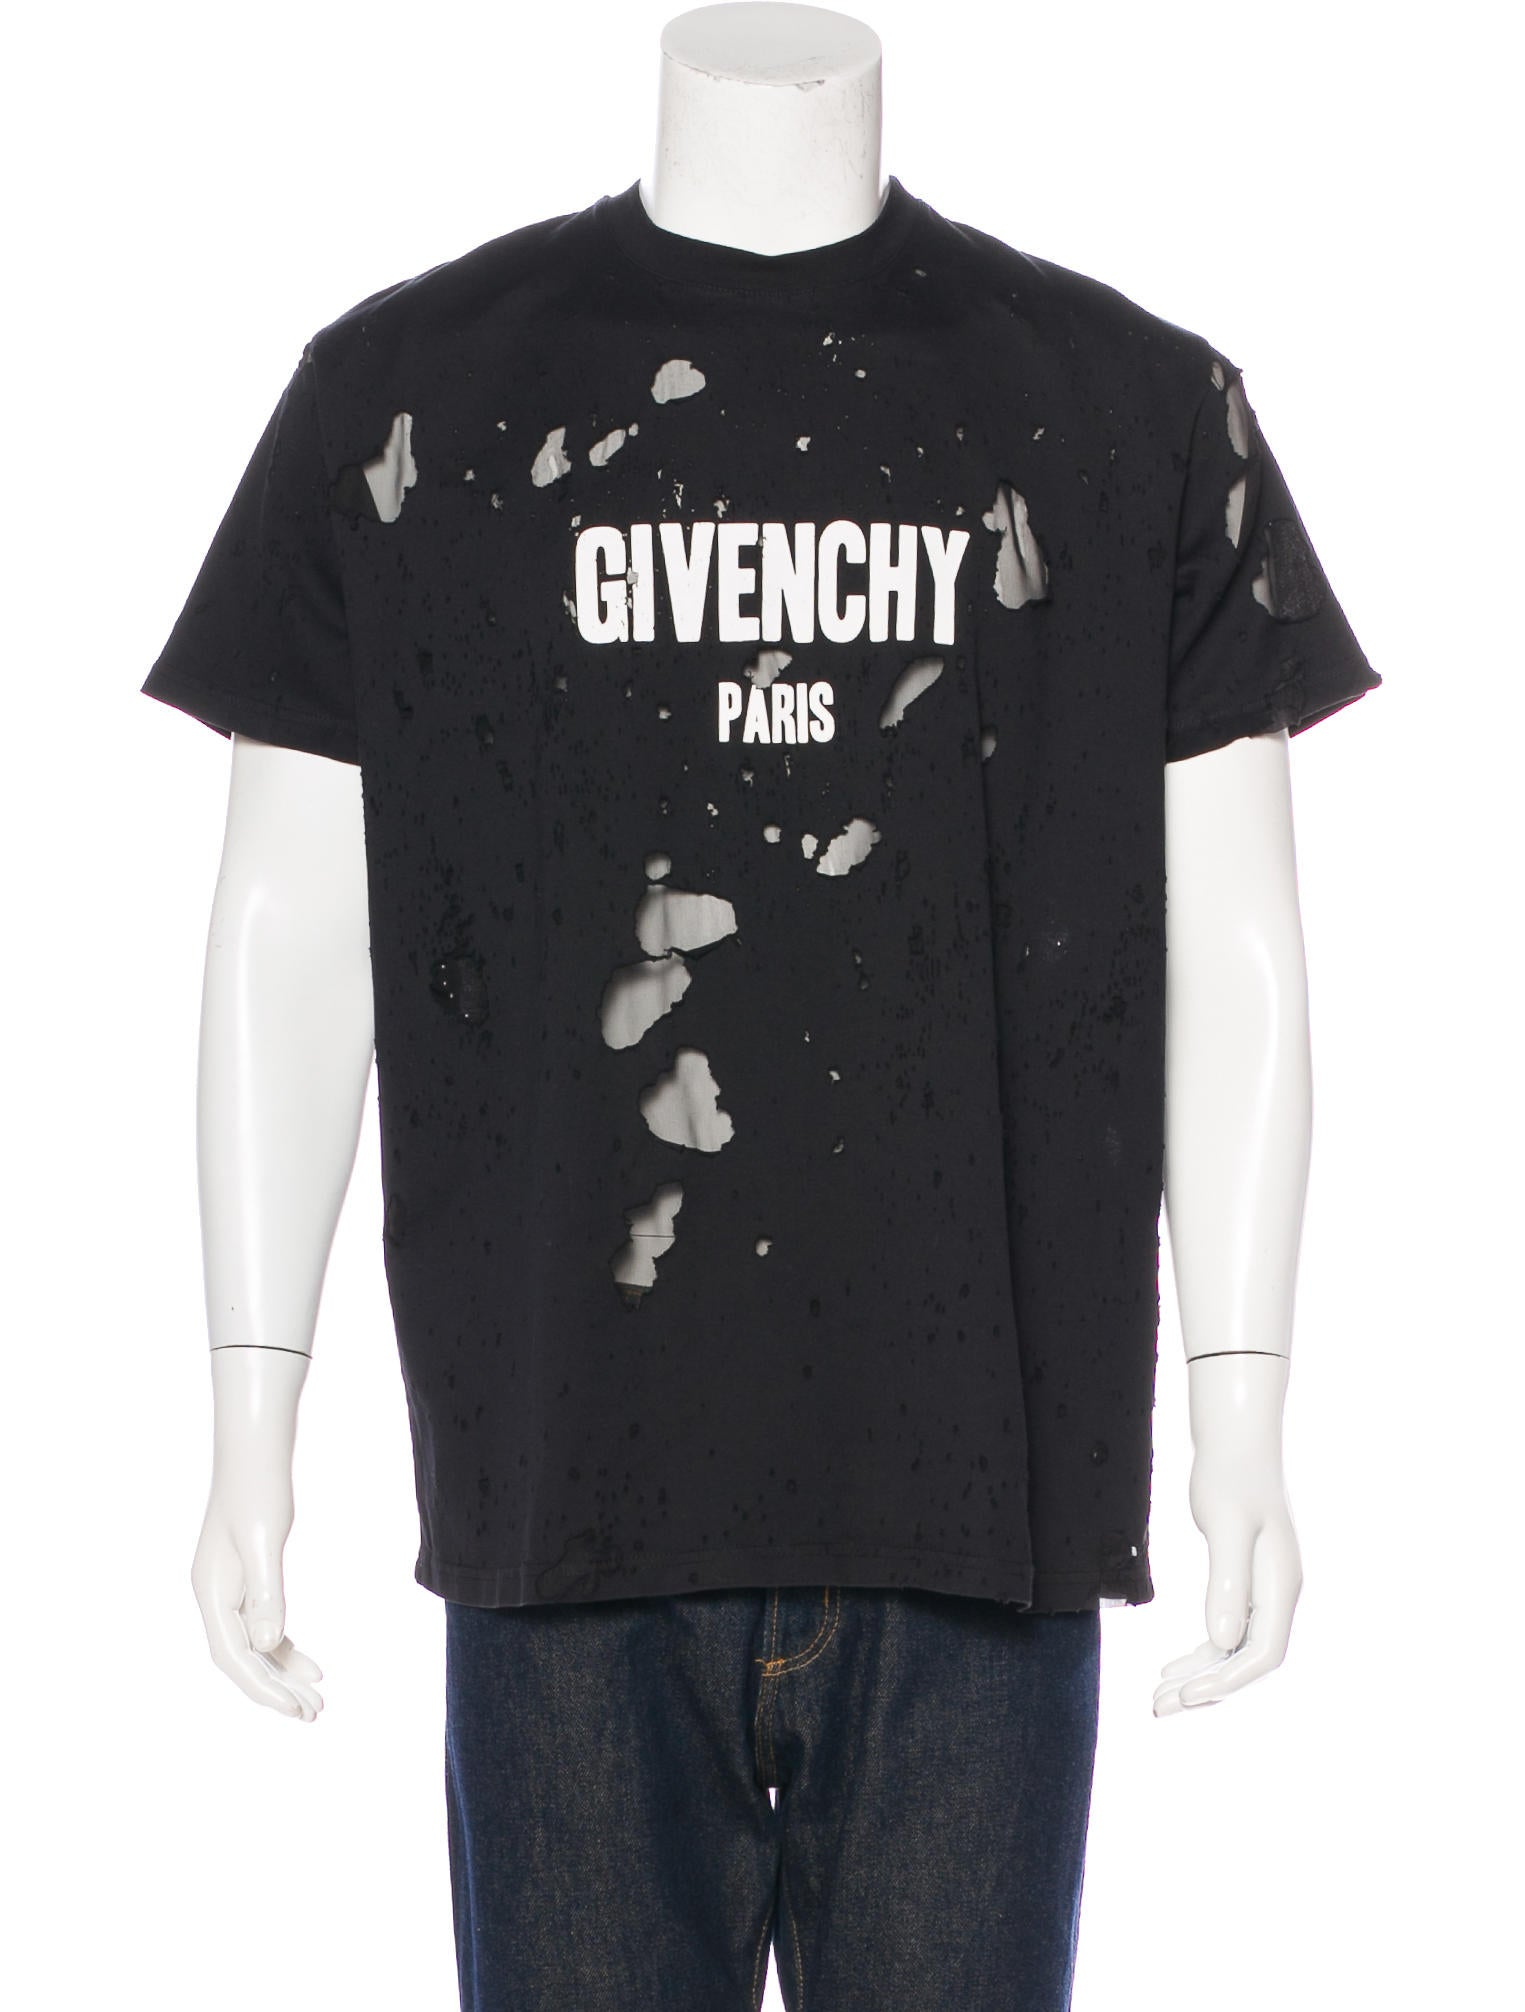 Givenchy 2017 destroyed logo t shirt clothing giv44399 Givenchy t shirt price